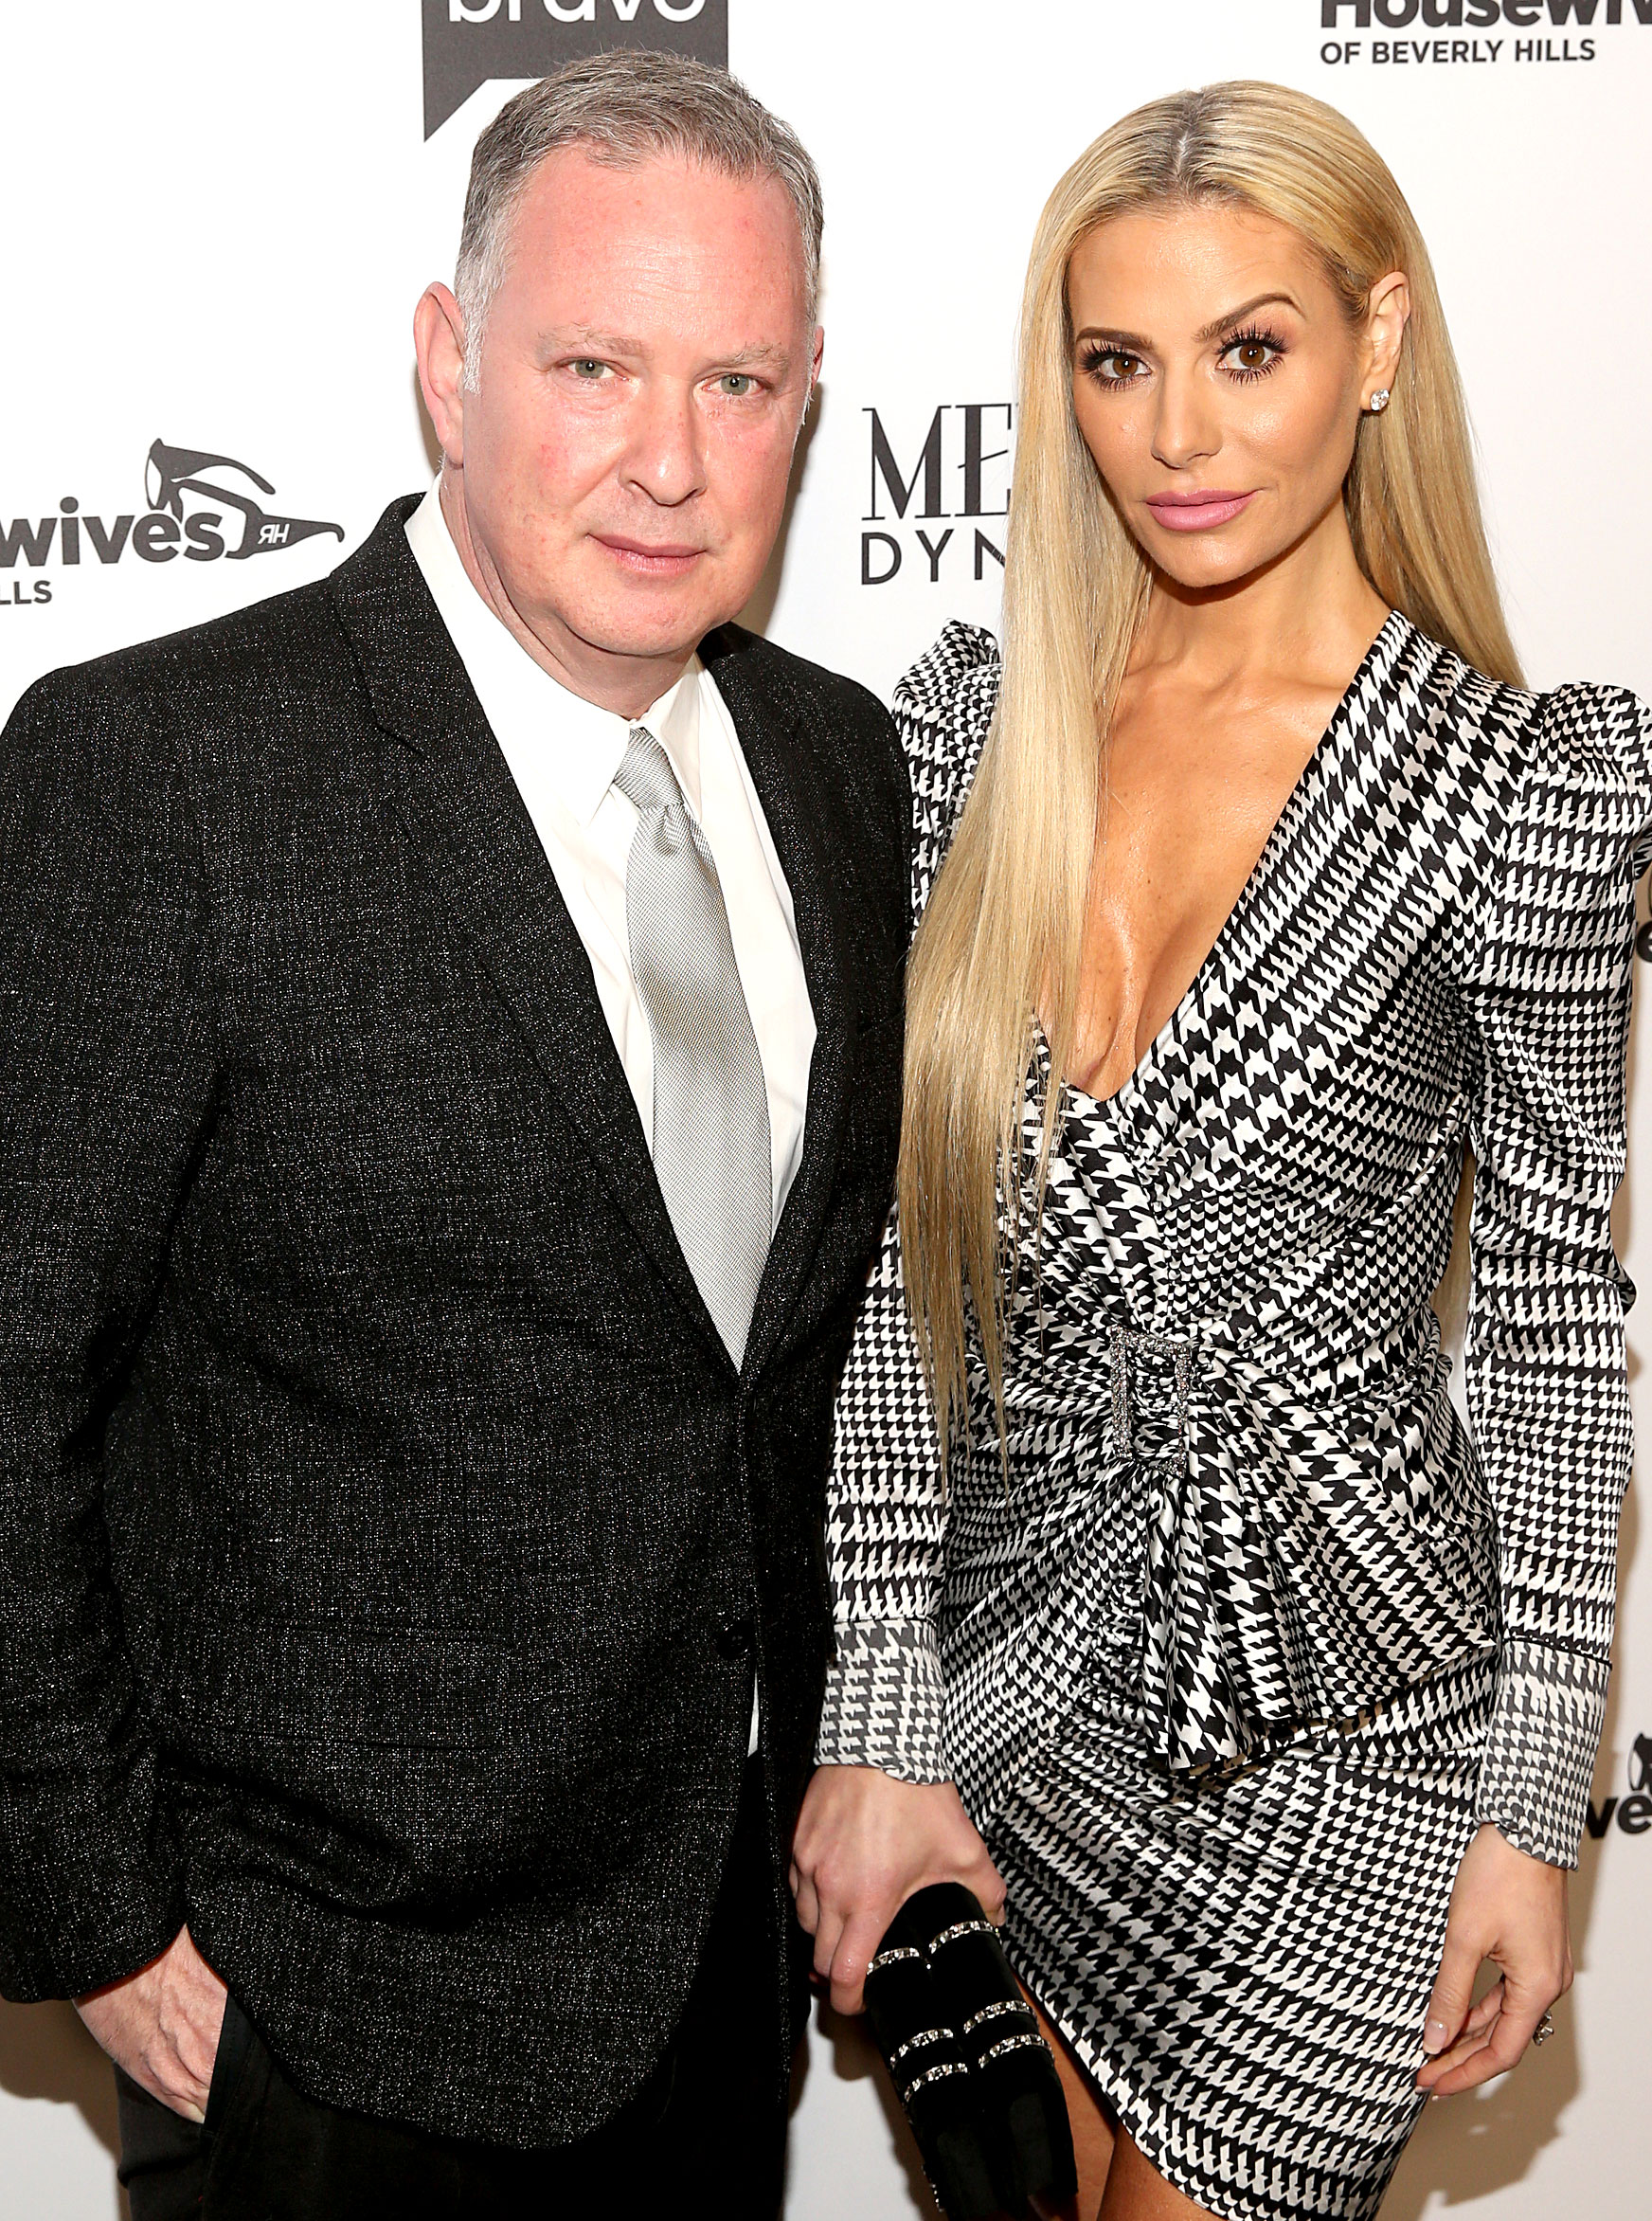 """Dorit Kemsley Husband Paul Kemsley Ordered Reveal Finances Lawsuit - Paul """"PK"""" Kemsley and Dorit Kemsley at """"The Real Housewives of Beverly Hills"""" and """"Mexican Dynasties"""" premiere party on February 12, 2019."""